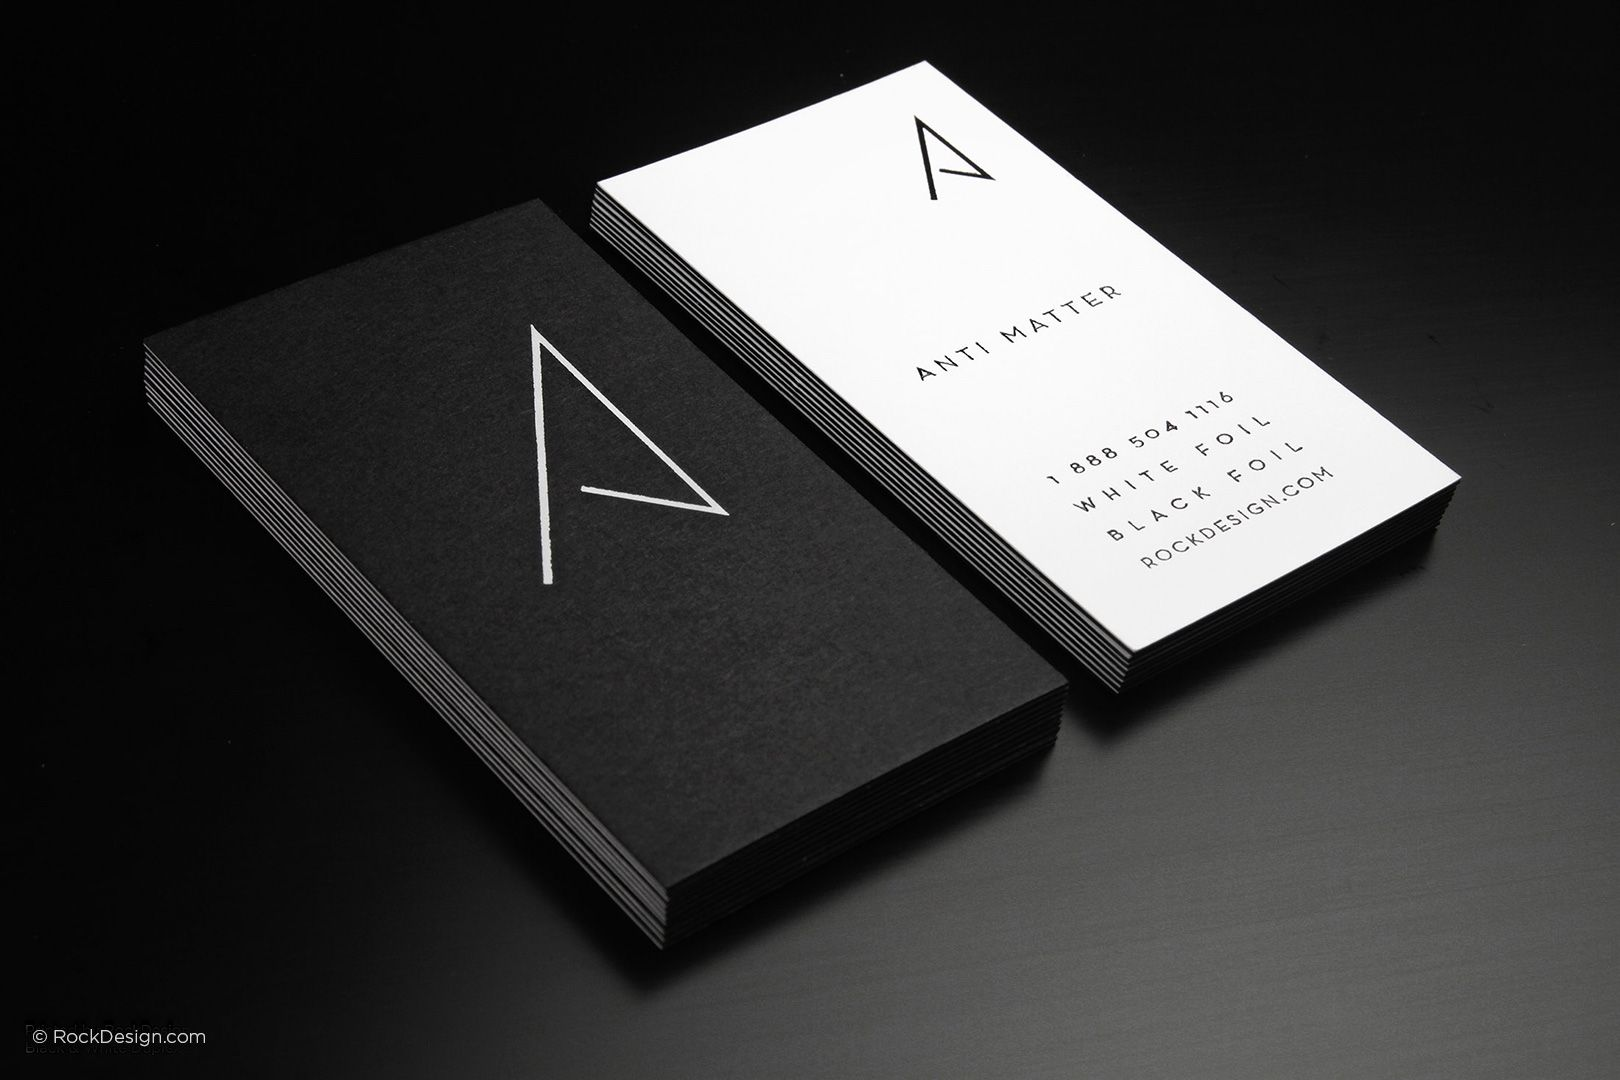 minimalist modern black and white business card anti matter rockdesign luxury business card printing - Minimalist Business Card